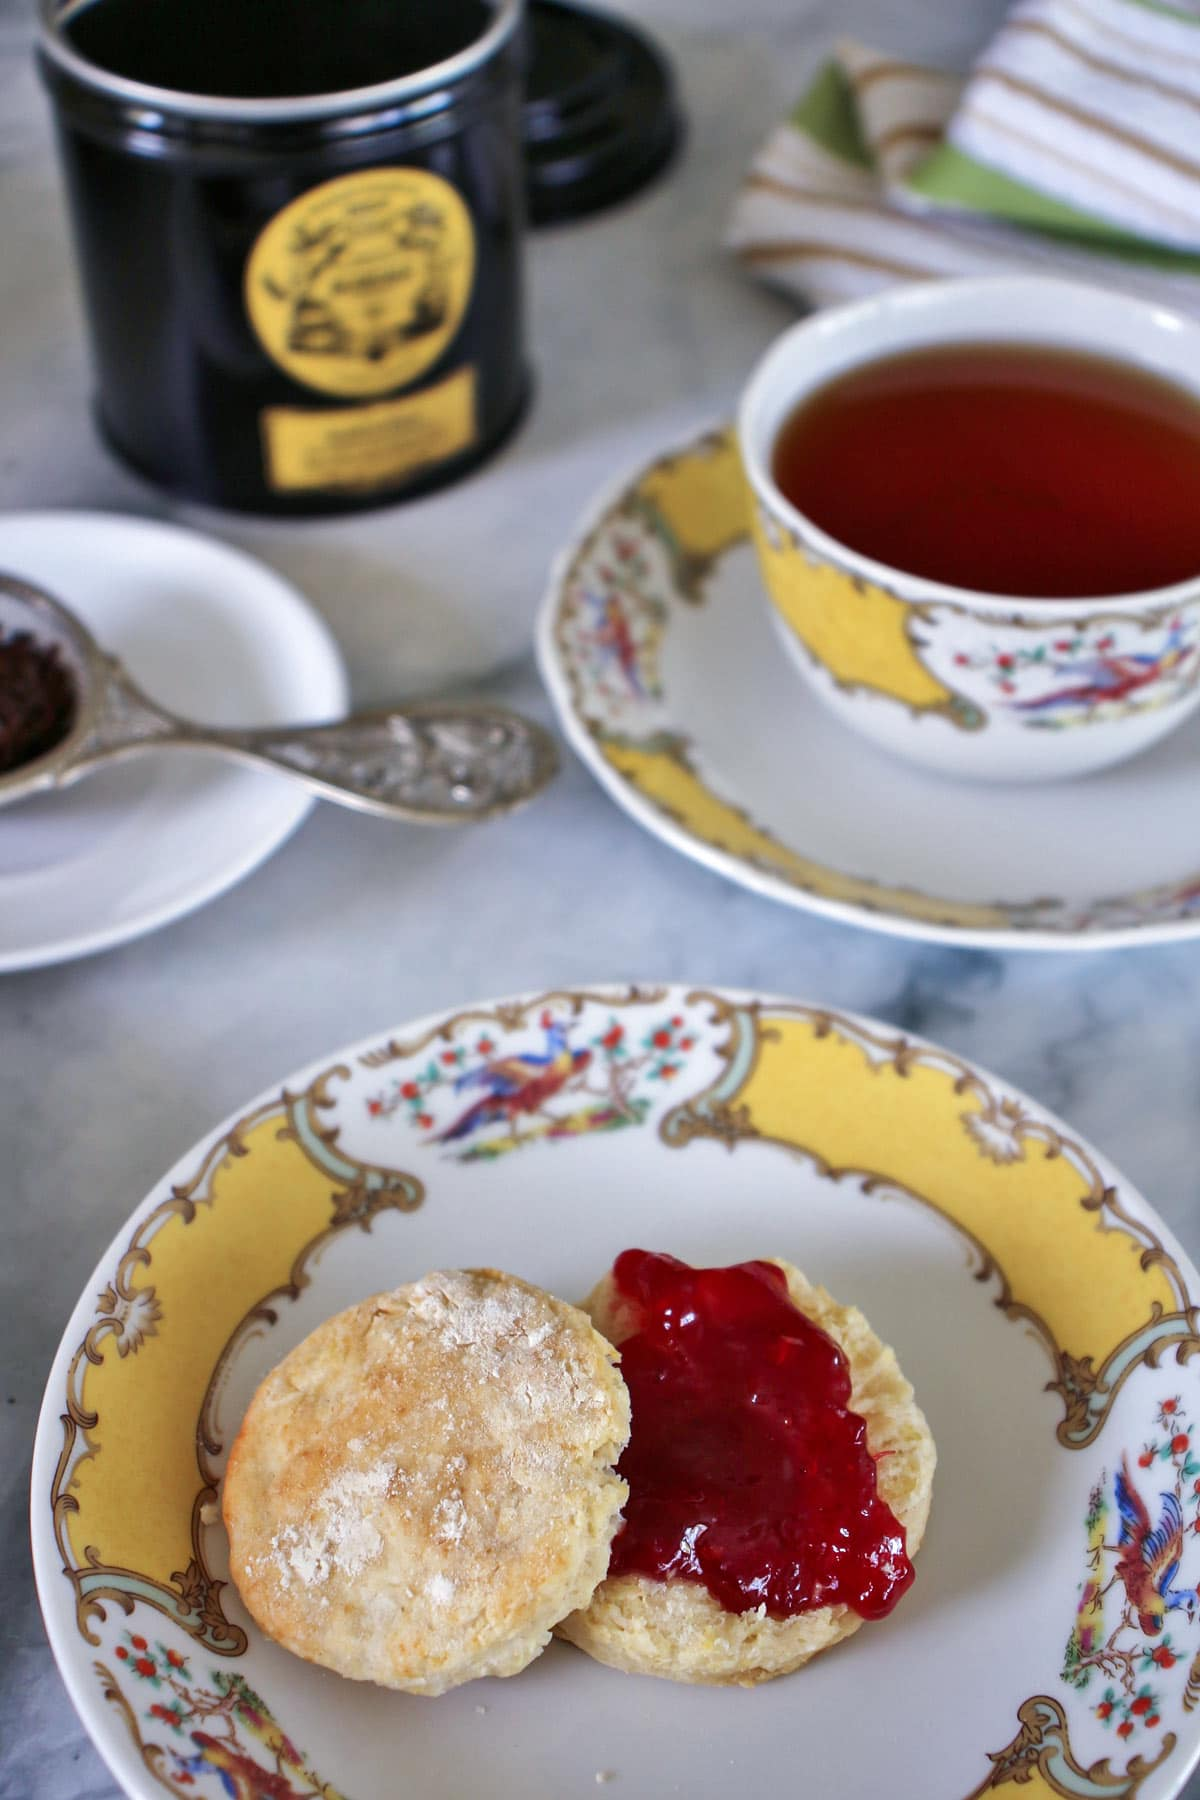 A small British afternoon tea scone topped with strawberry jam, served with a cup of tea in fine china